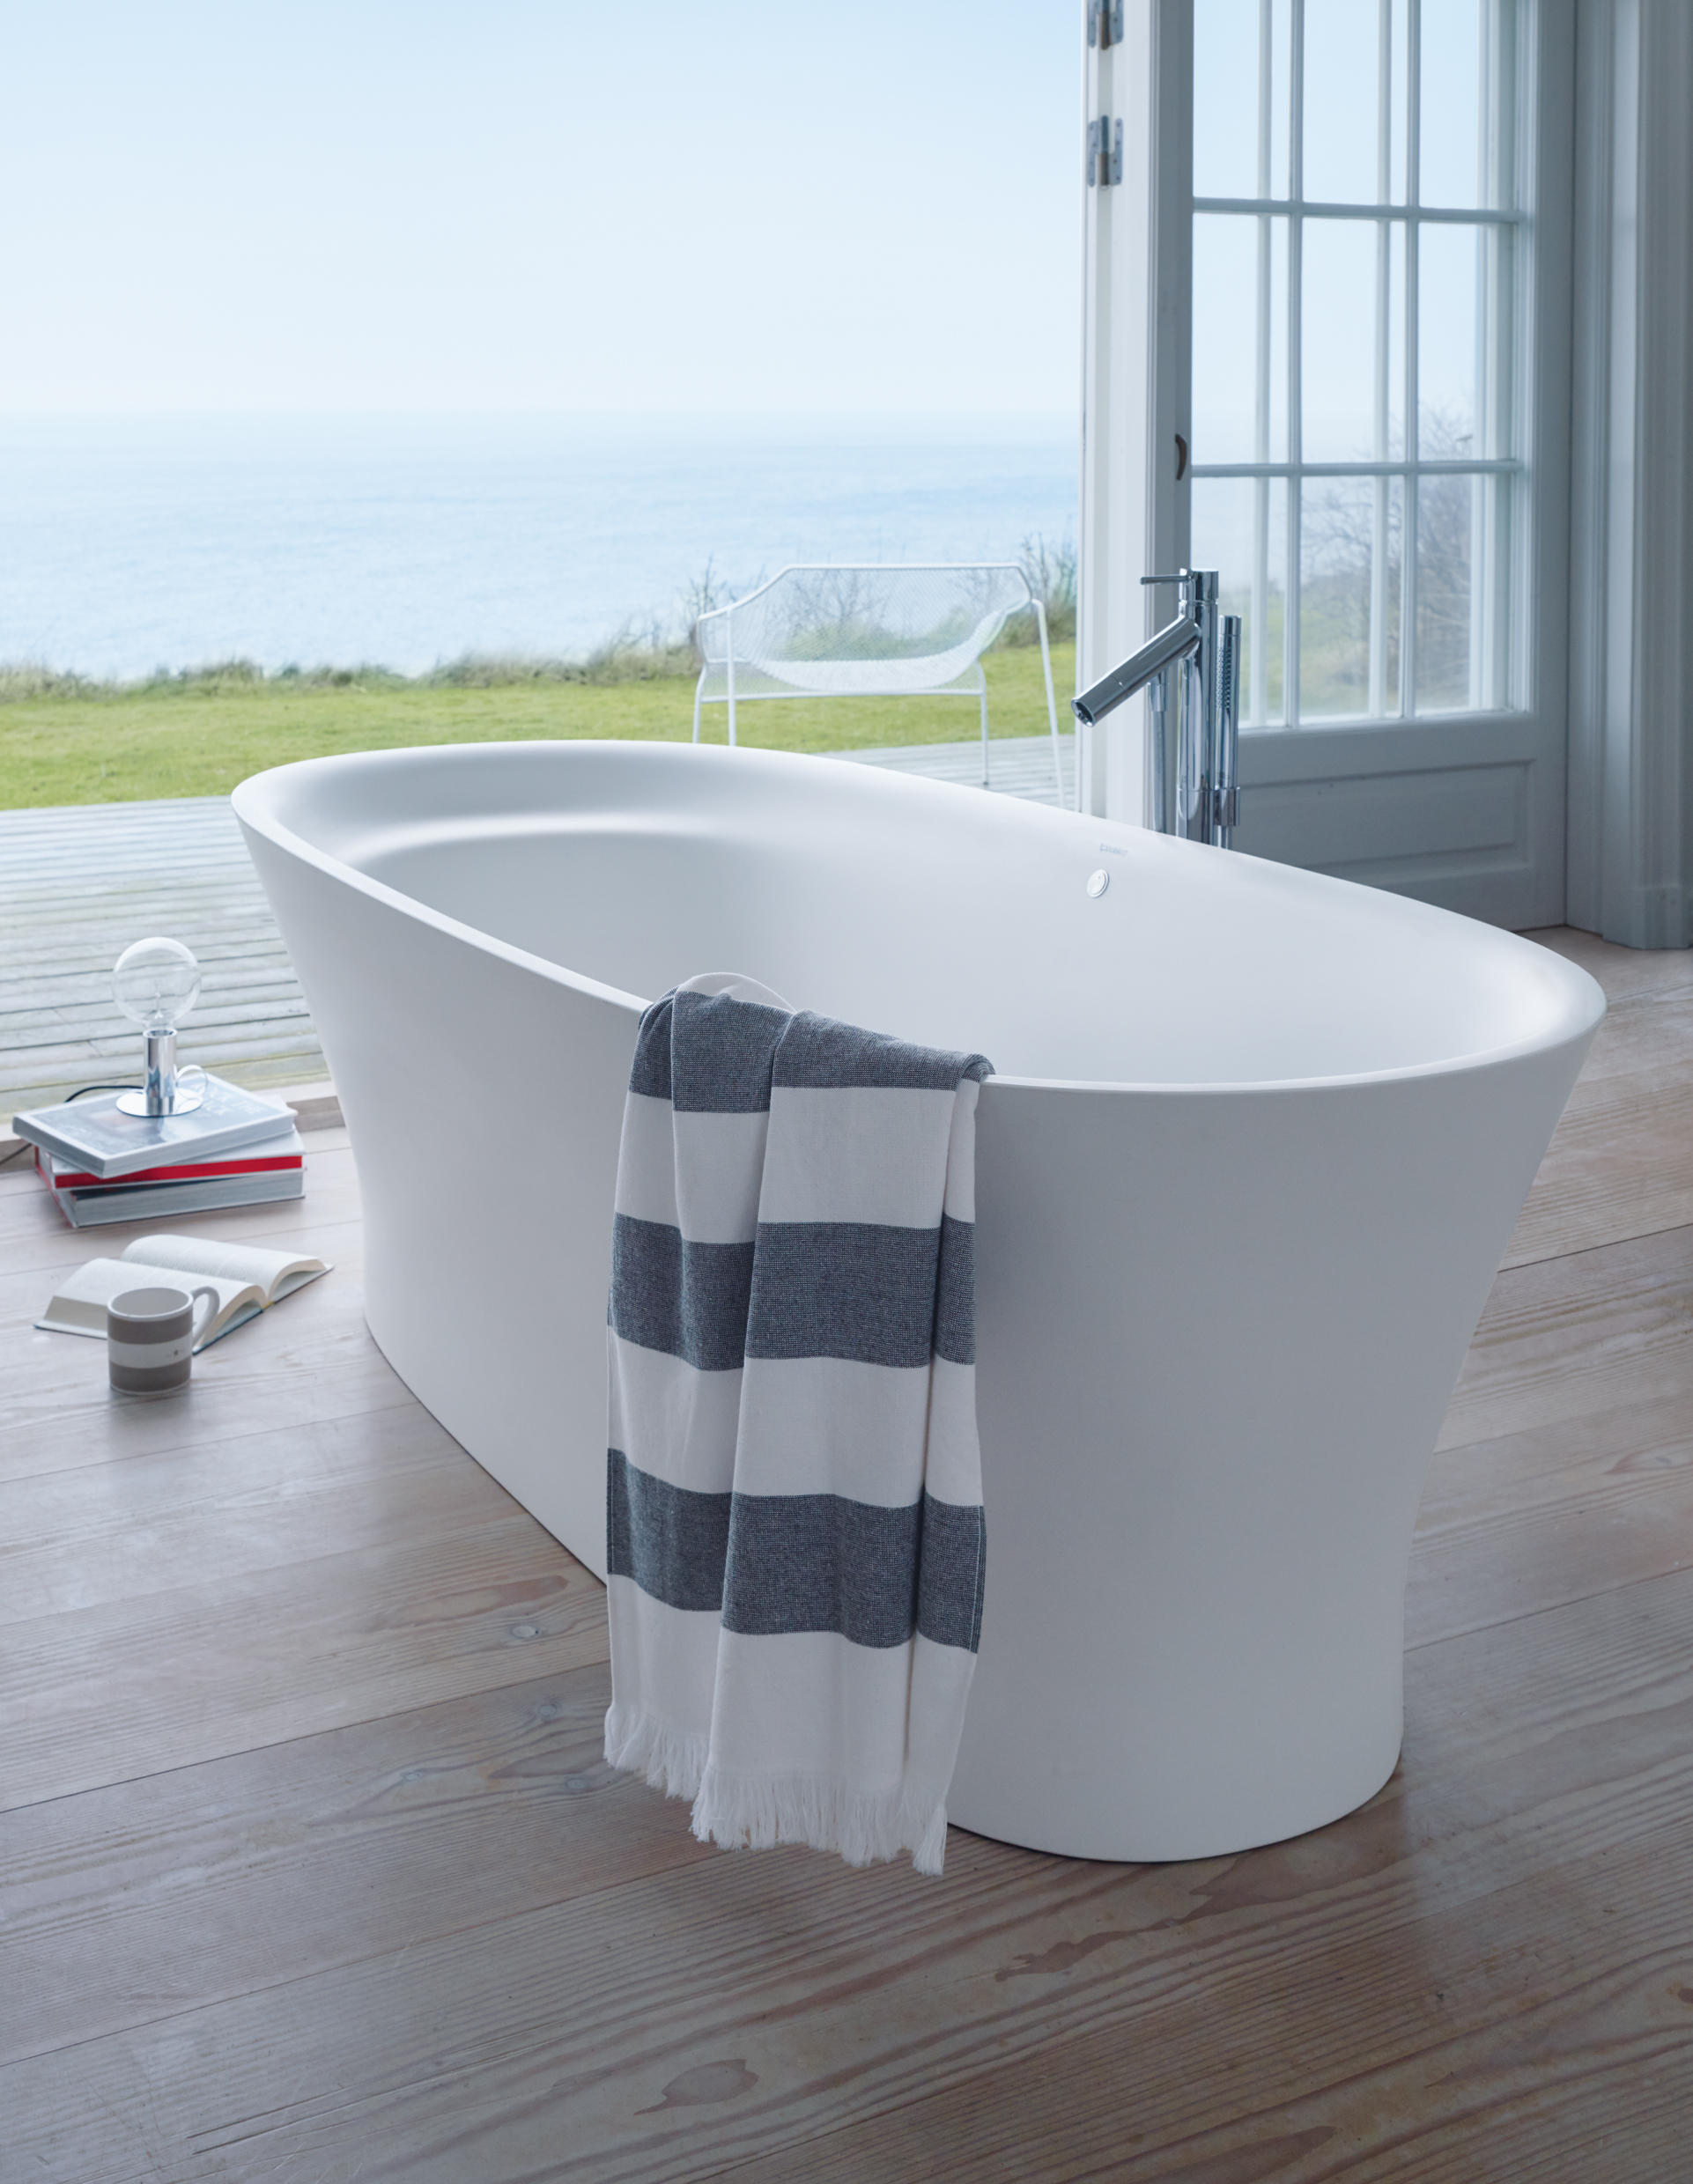 Cape cod bathtub free standing baths from duravit for Best freestanding tub material